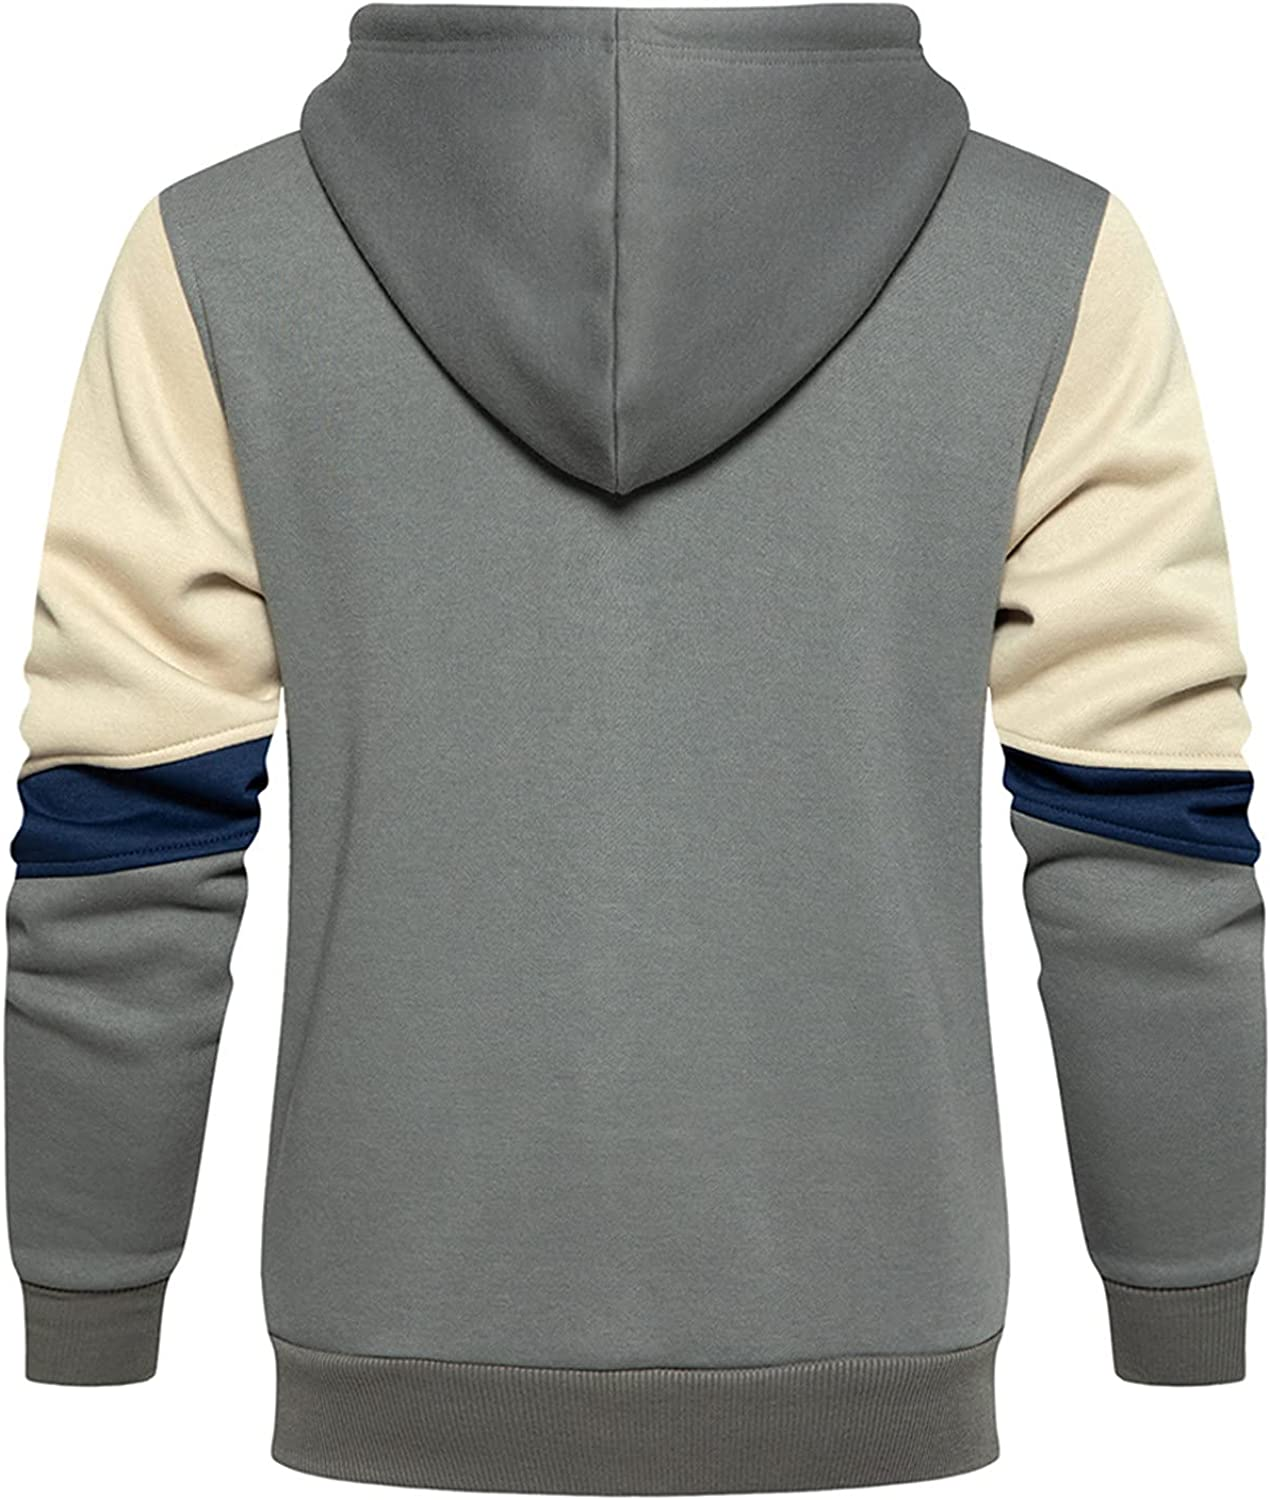 HONGJ Patchwork Hoodies for Mens, Fall Zipper Drawstring Hooded Sweatshirts Slim Fit Athletic Sports Casual Pullover